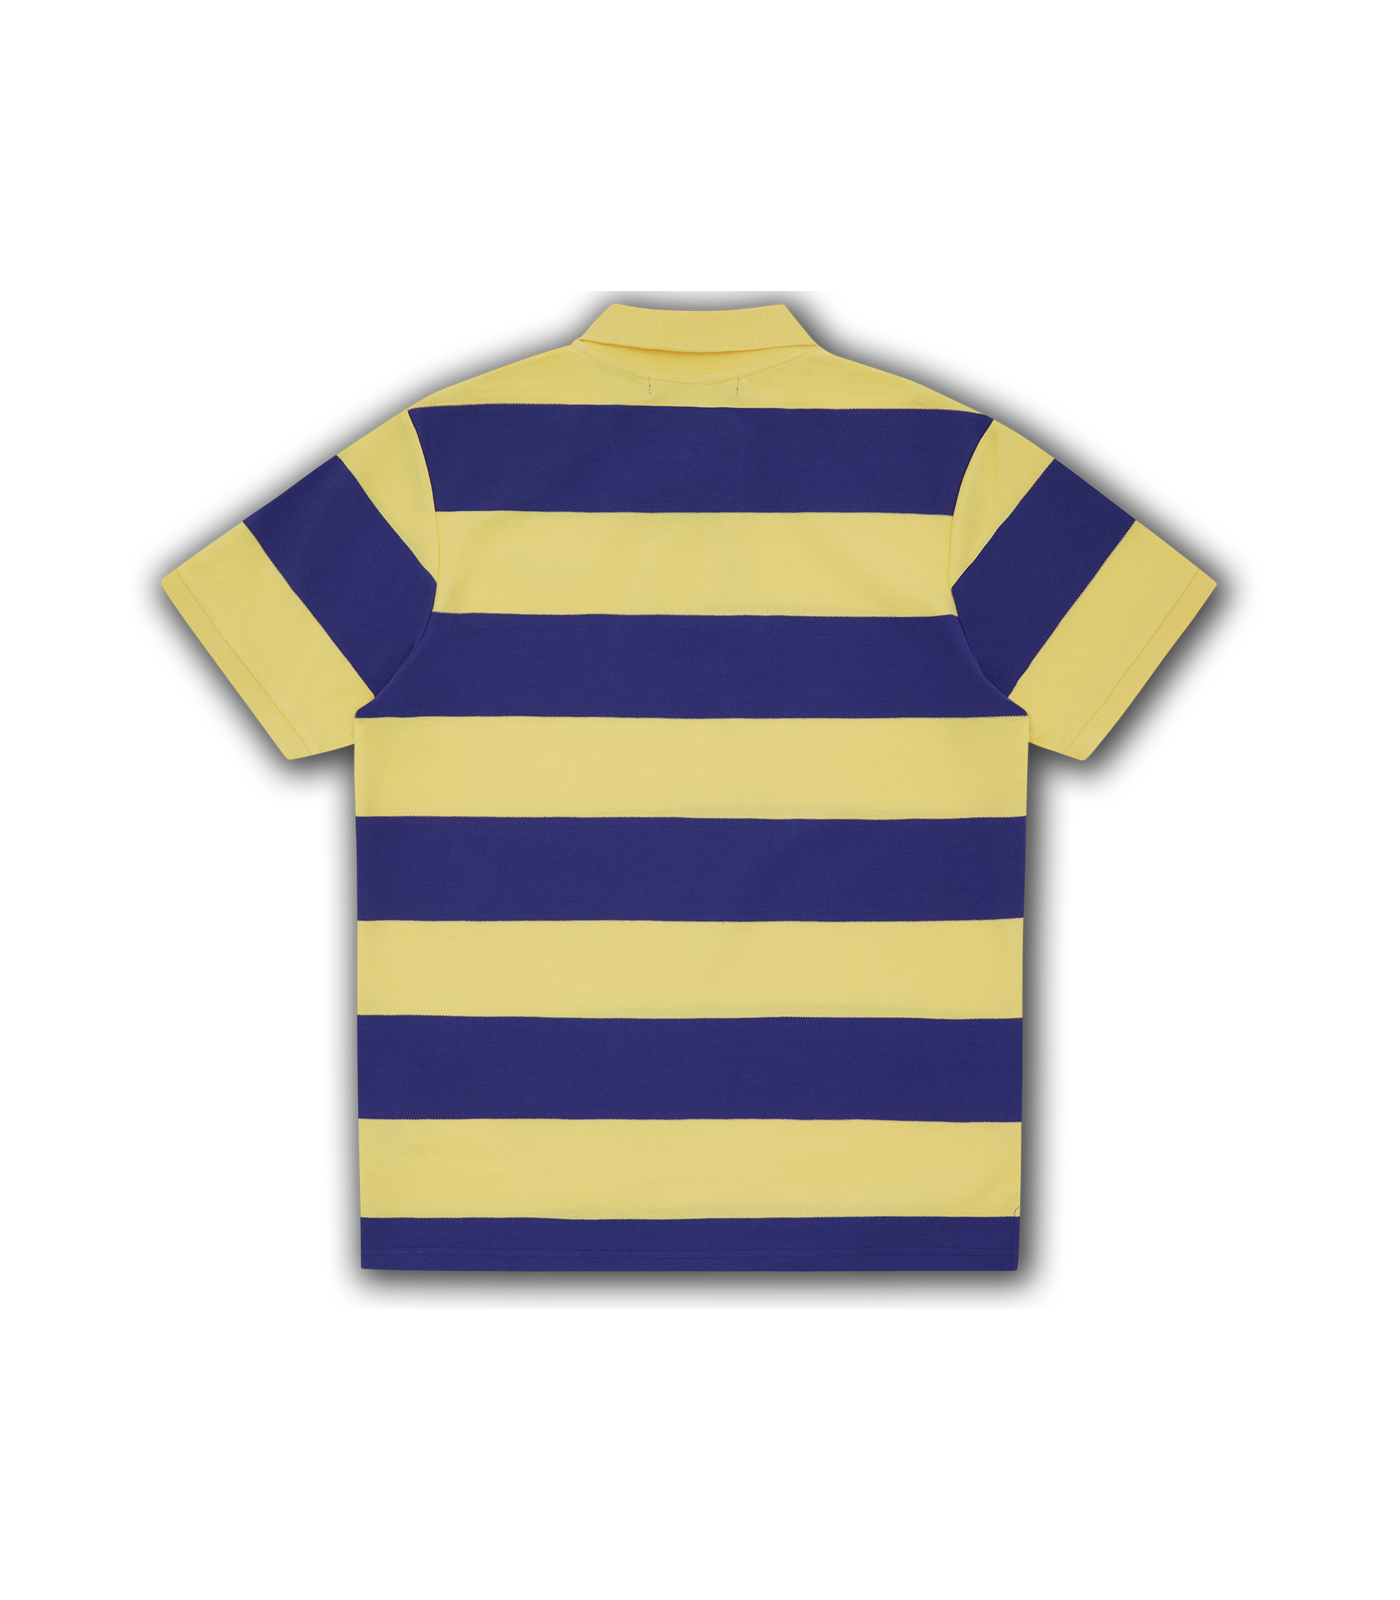 STRIPED POLO SHIRT - YELLOW/PURPLE